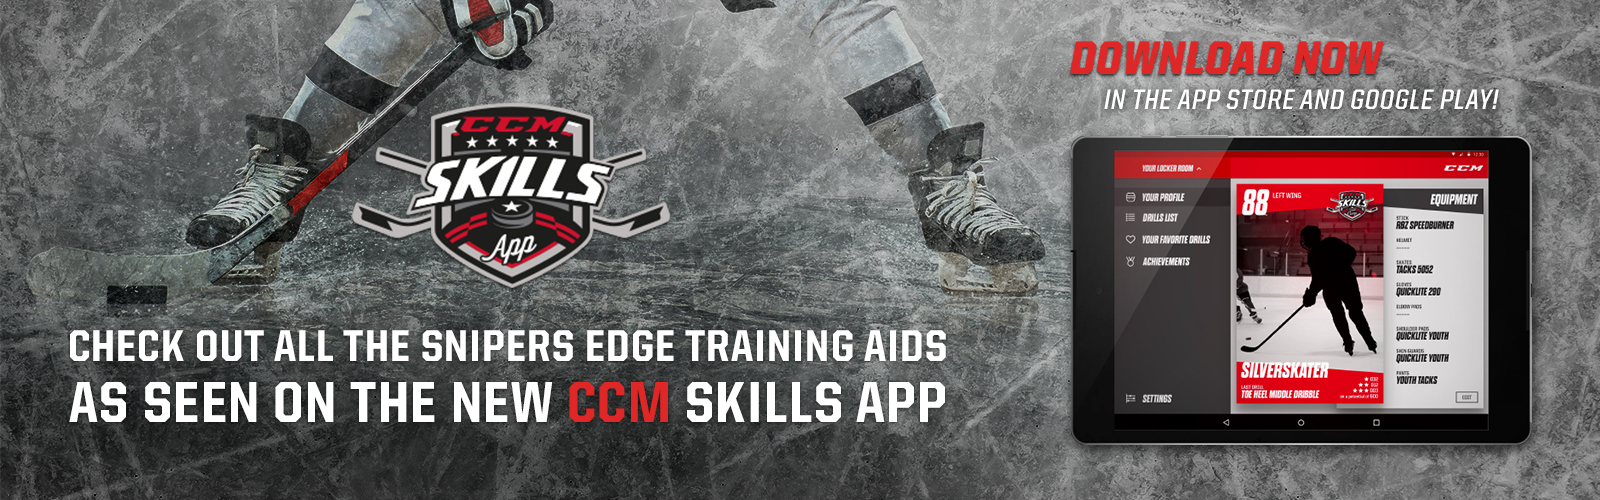 CCM Skills App featuring SnipersEdgeHockey.com Hockey Training Aids